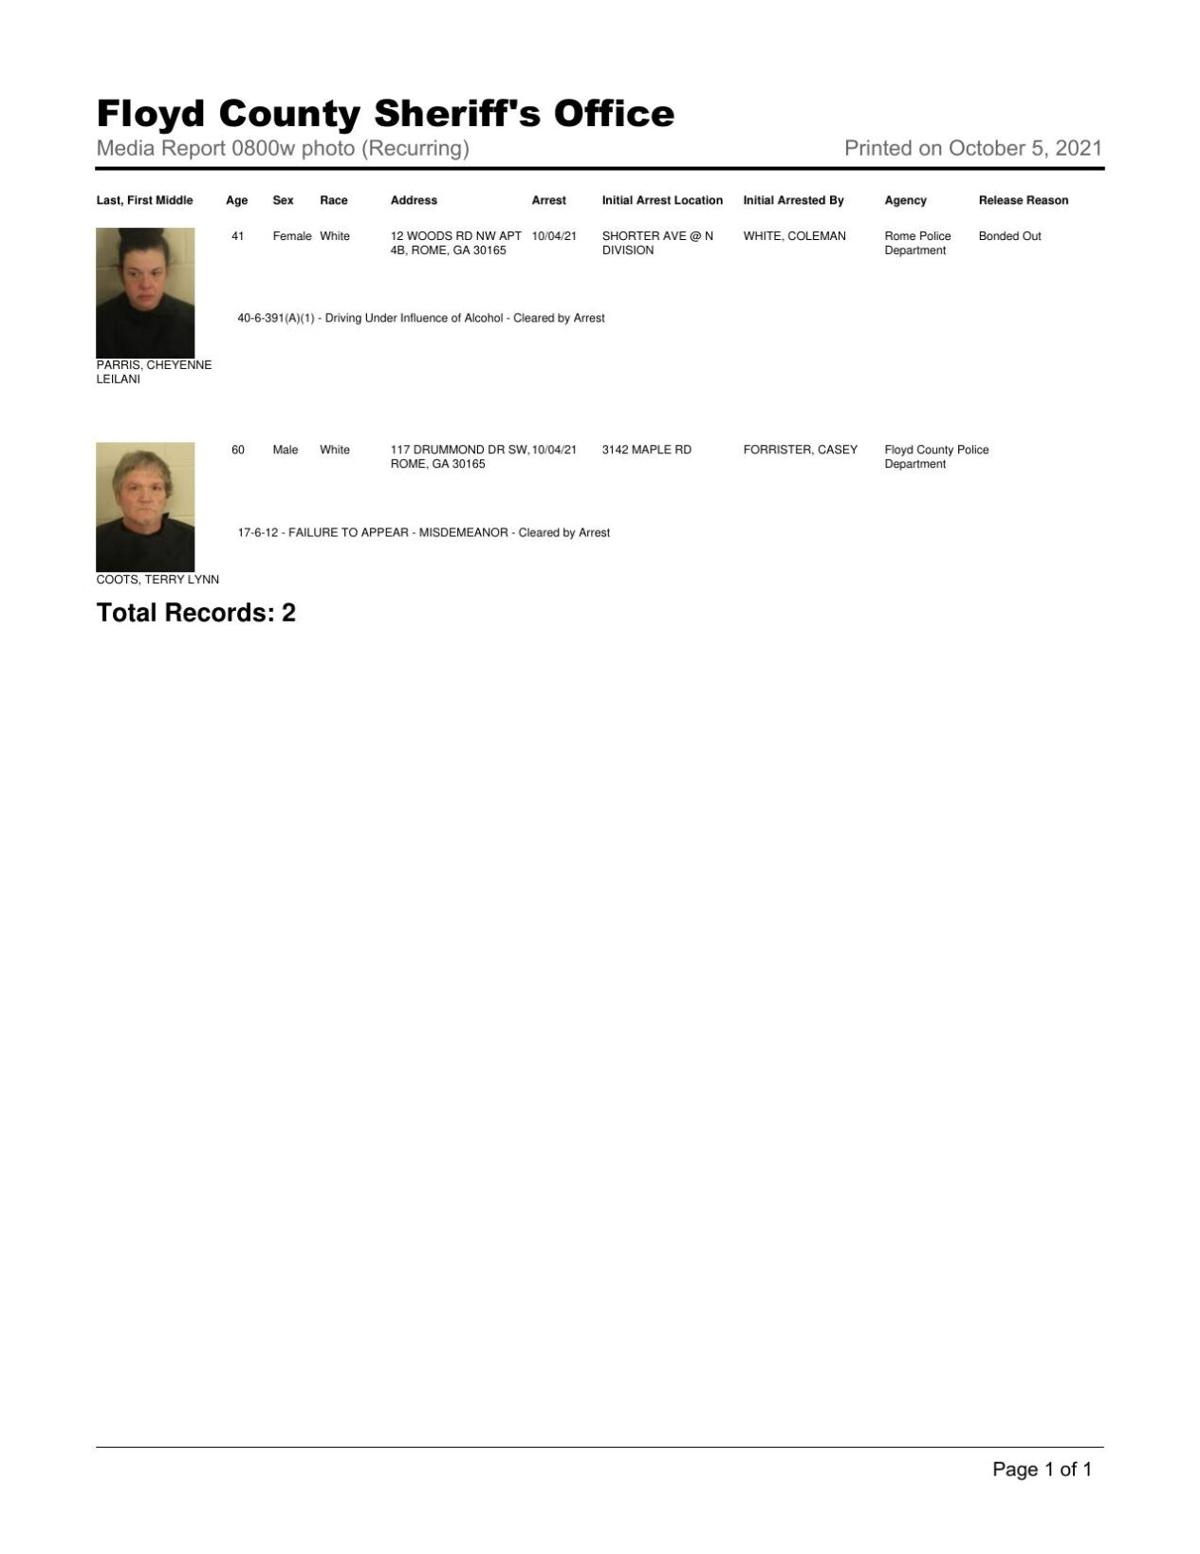 Floyd County Jail report for 8 a.m. Tuesday, Oct. 5